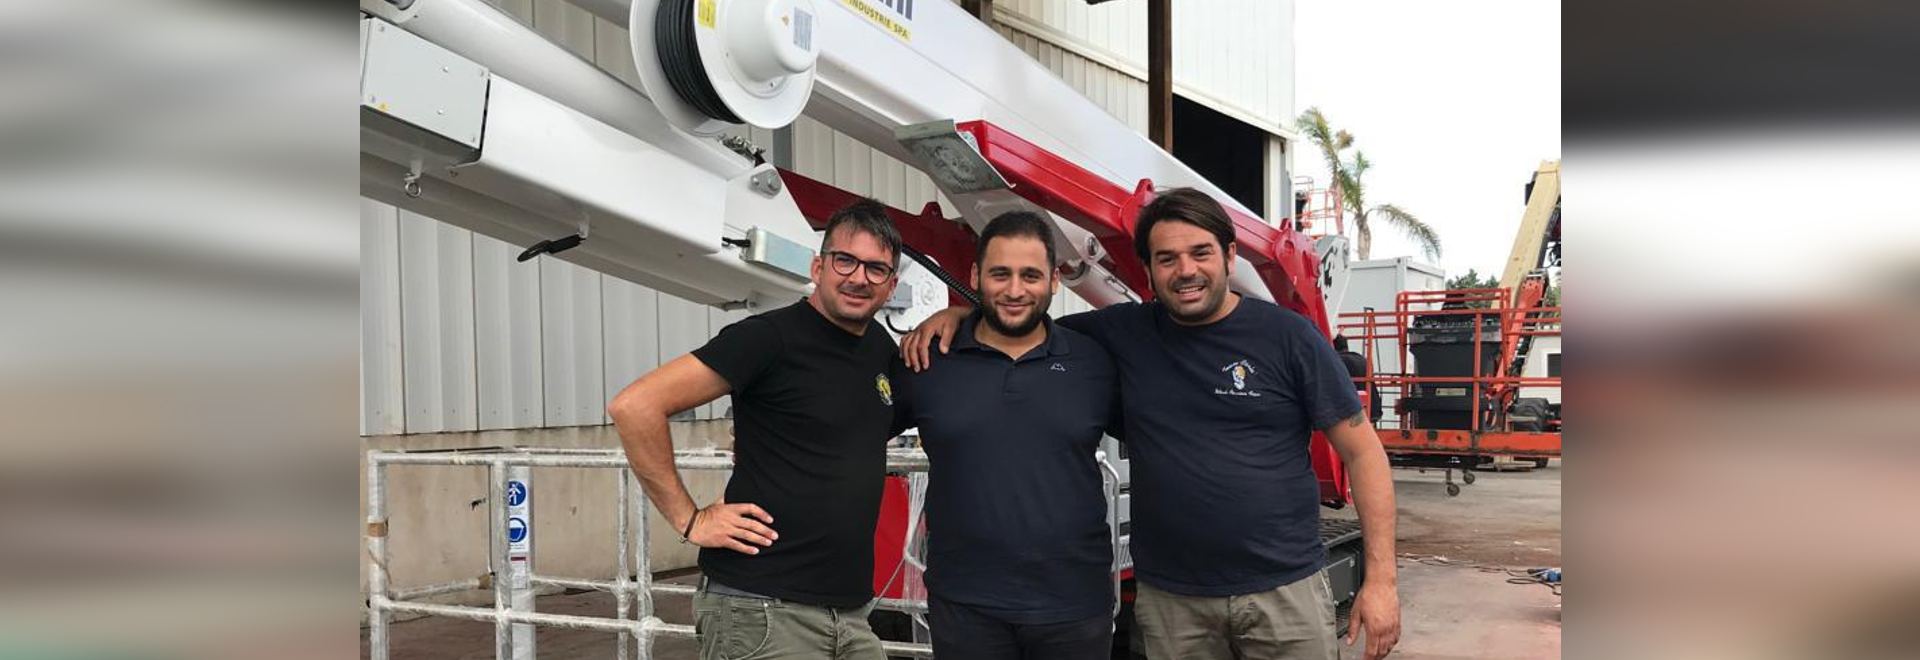 One Palazzani crawler Spider Lift goes to Puglia (Southern Italy)